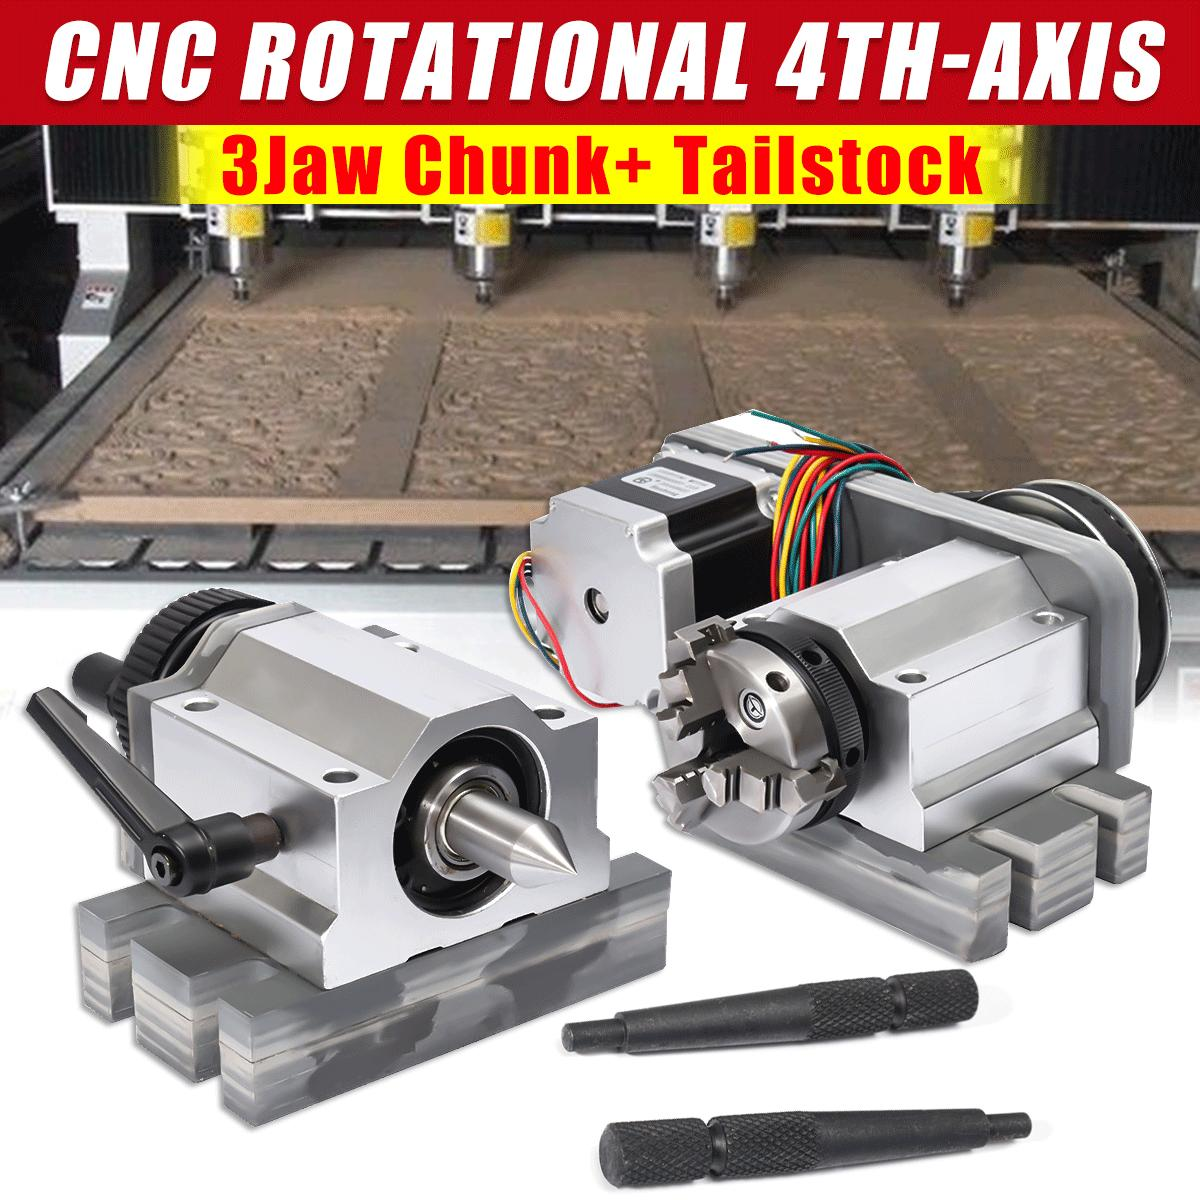 Cnc Router Rotational Rotary Axis A Axis 4th Axis 80mm 3 Jaw Chuck Tail Stock Buy Sell Online Best Prices In Srilanka Daraz Lk